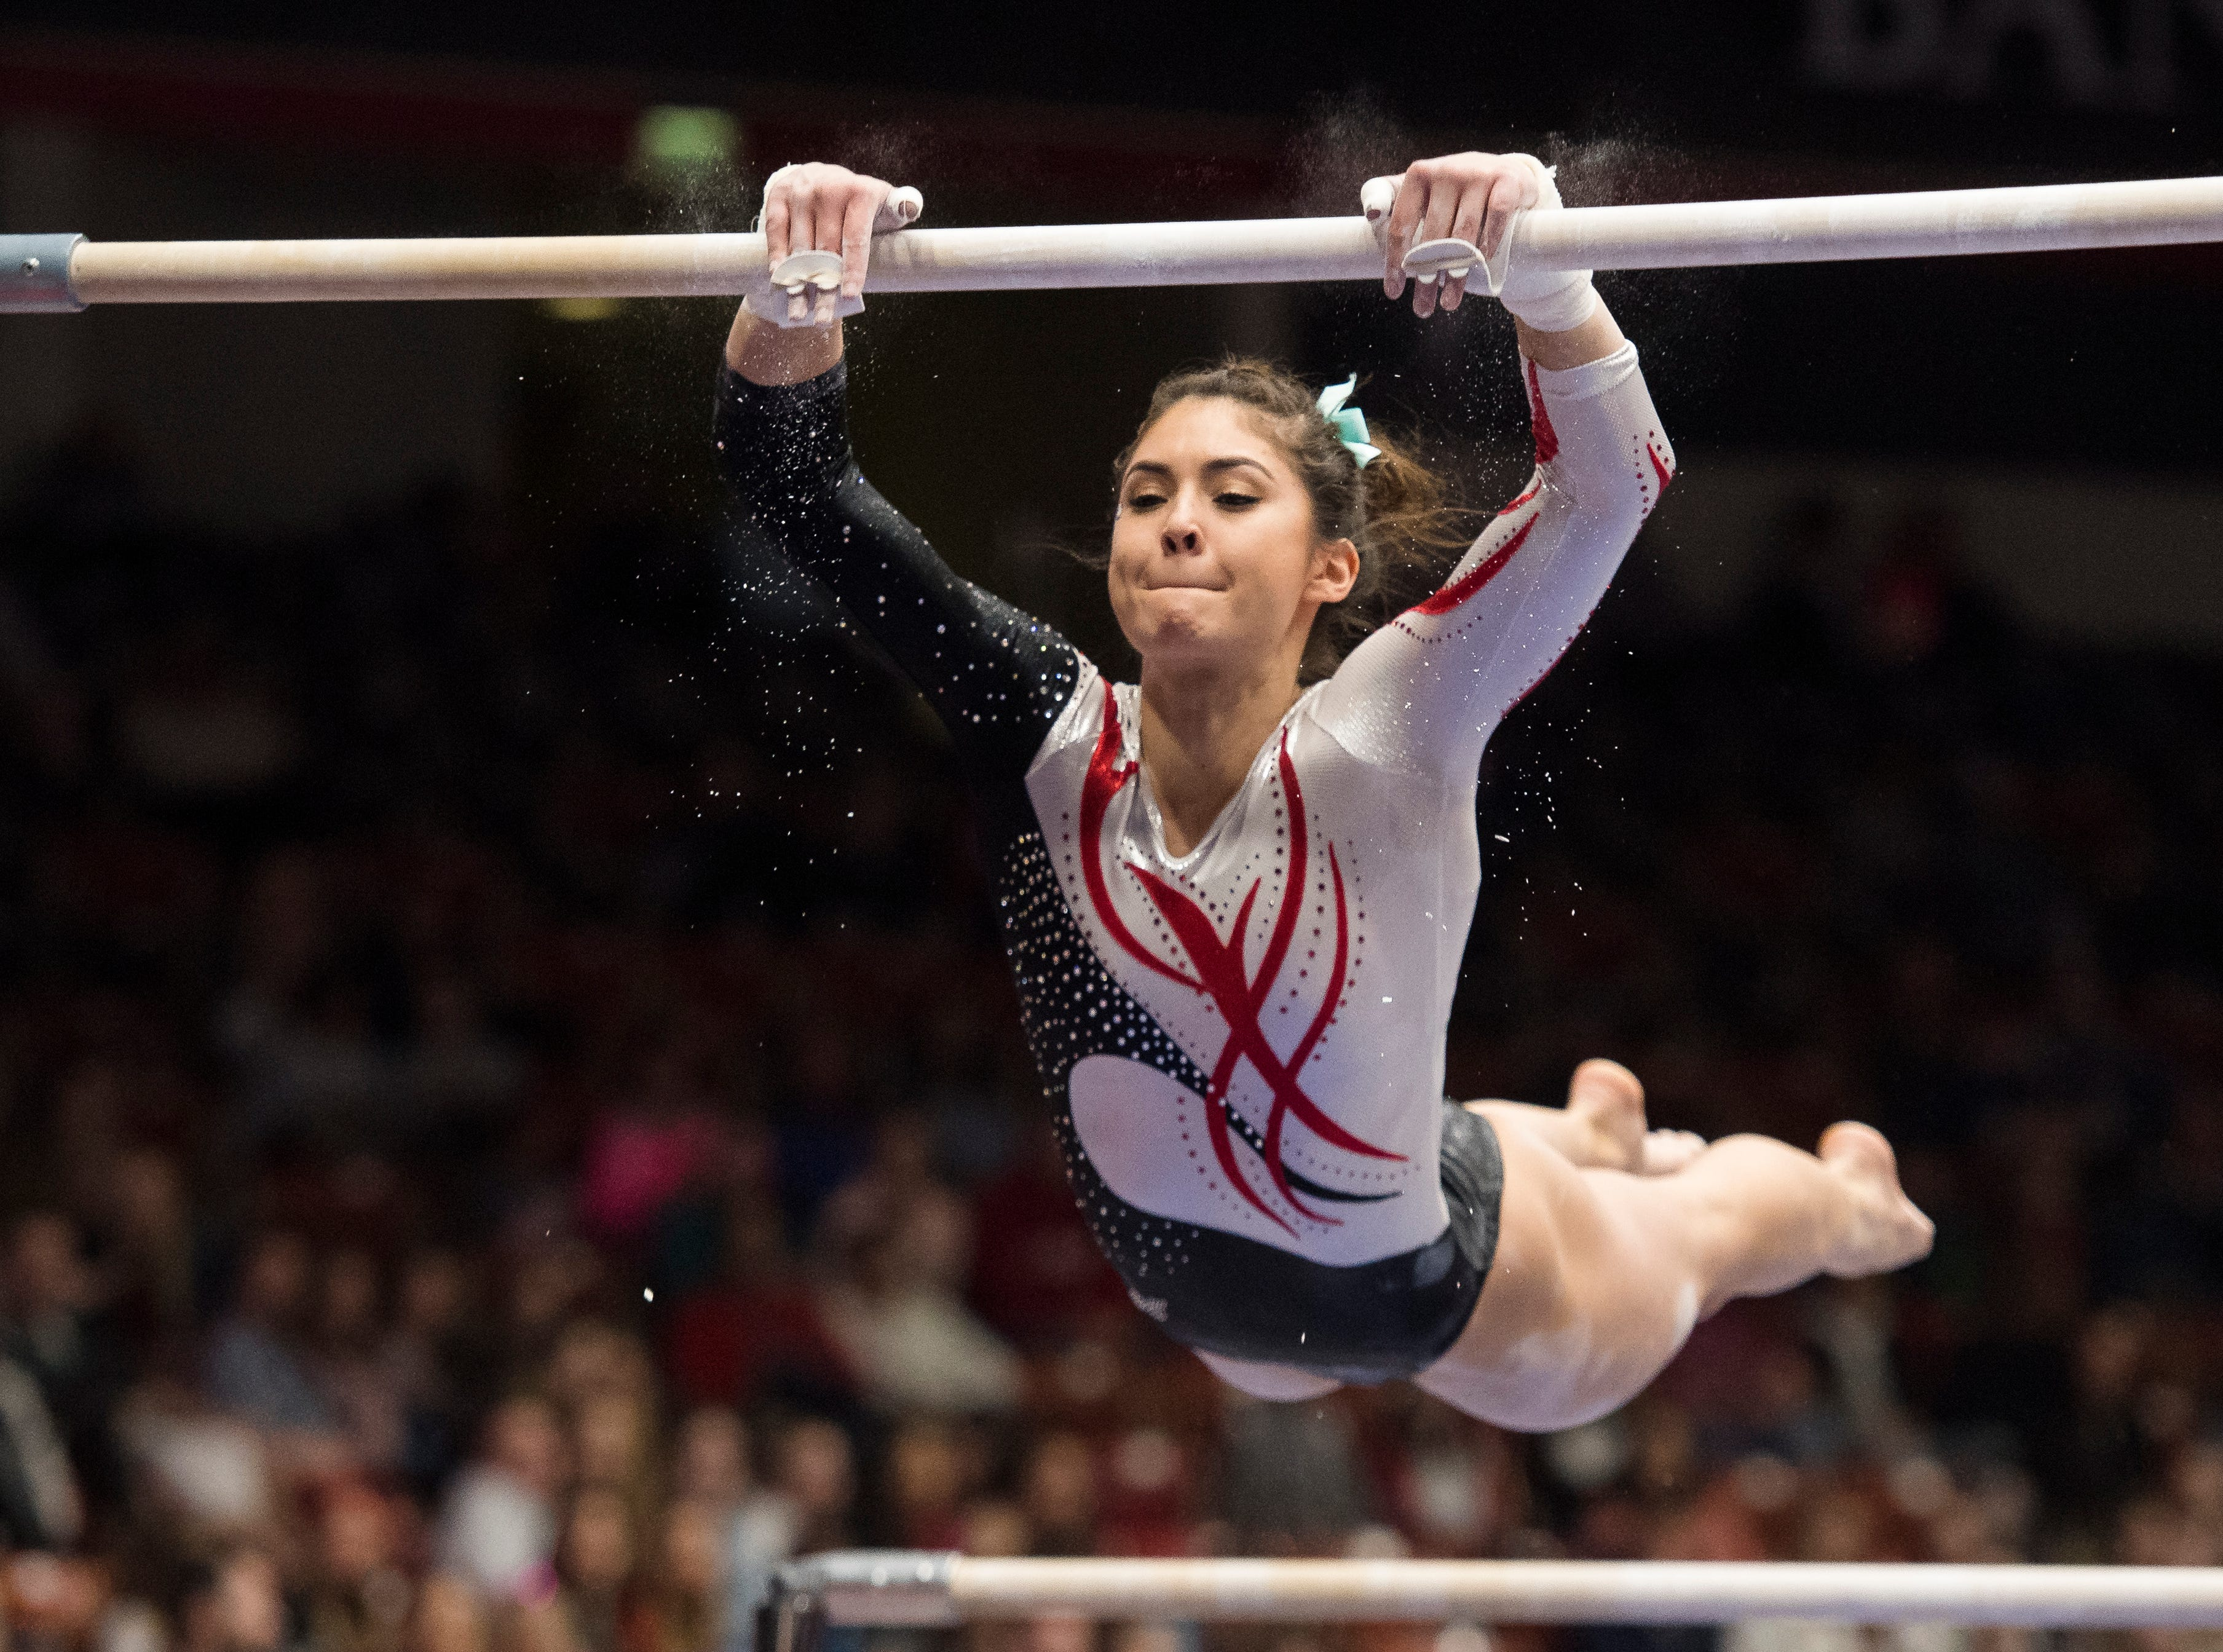 Southern Utah University senior Karen Gonzalez leaps onto the bar during her double bar performance against University of Washington at the America First Event Center Saturday, March 3, 2018.